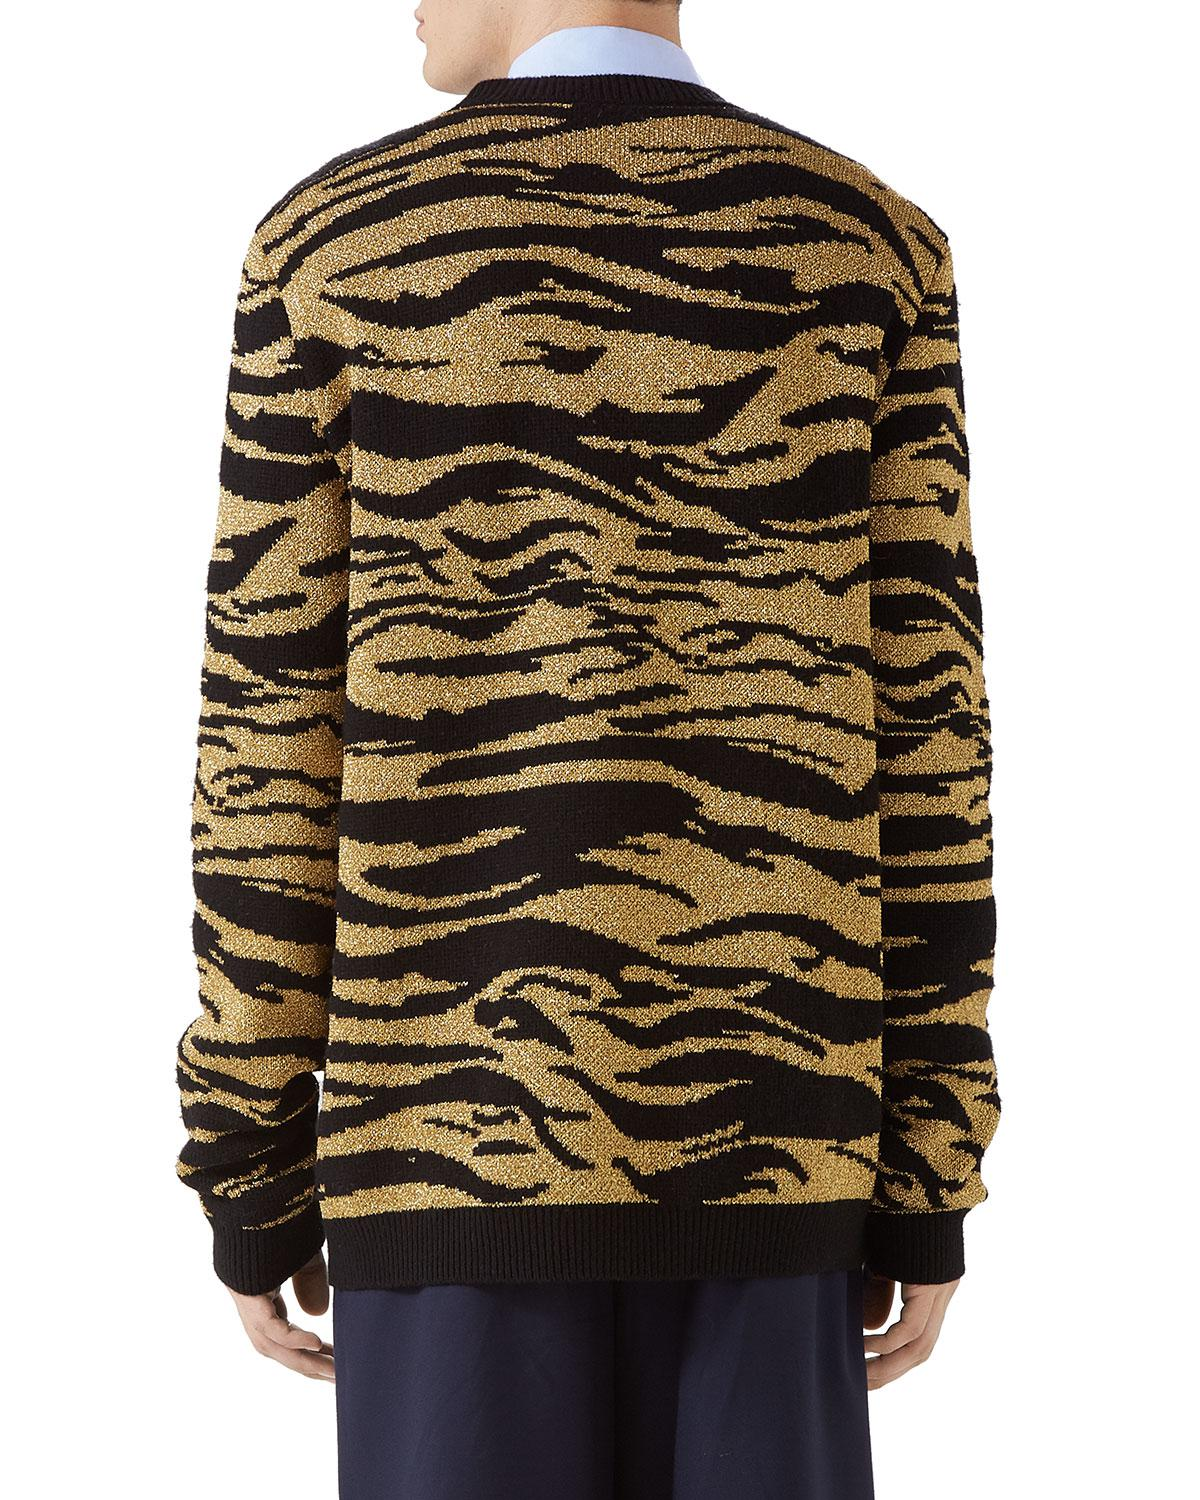 136c492ba9e Lyst - Gucci Black And Gold Jacquard Tiger Sweater in Black for Men